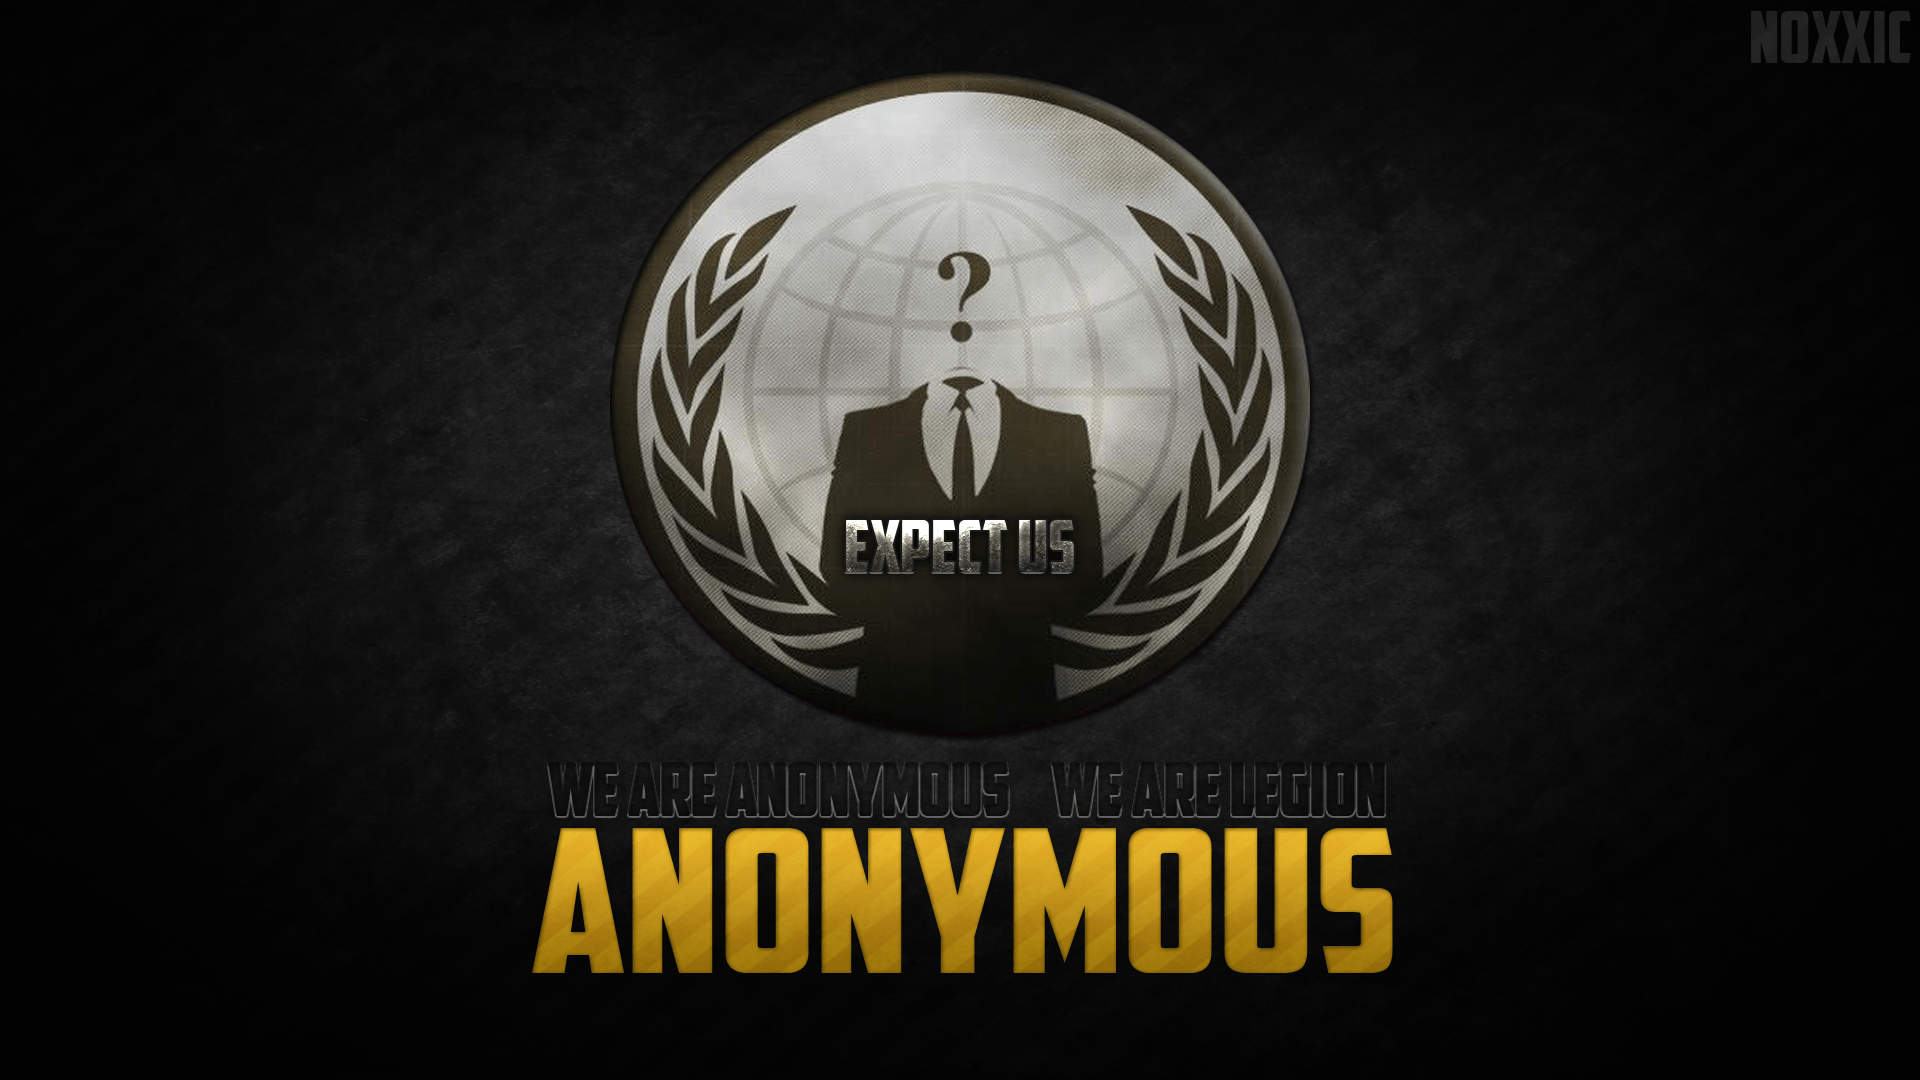 Hacker Anonymous Wallpapers Wallpaper Cave